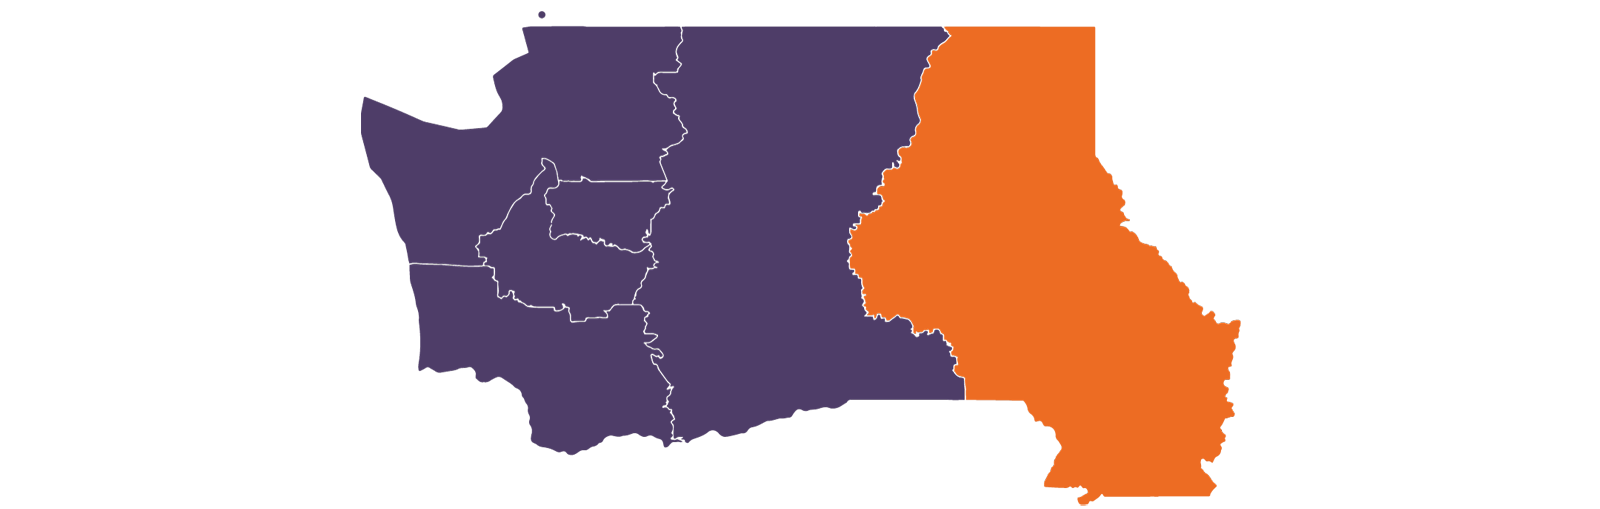 inland-district-map-wide